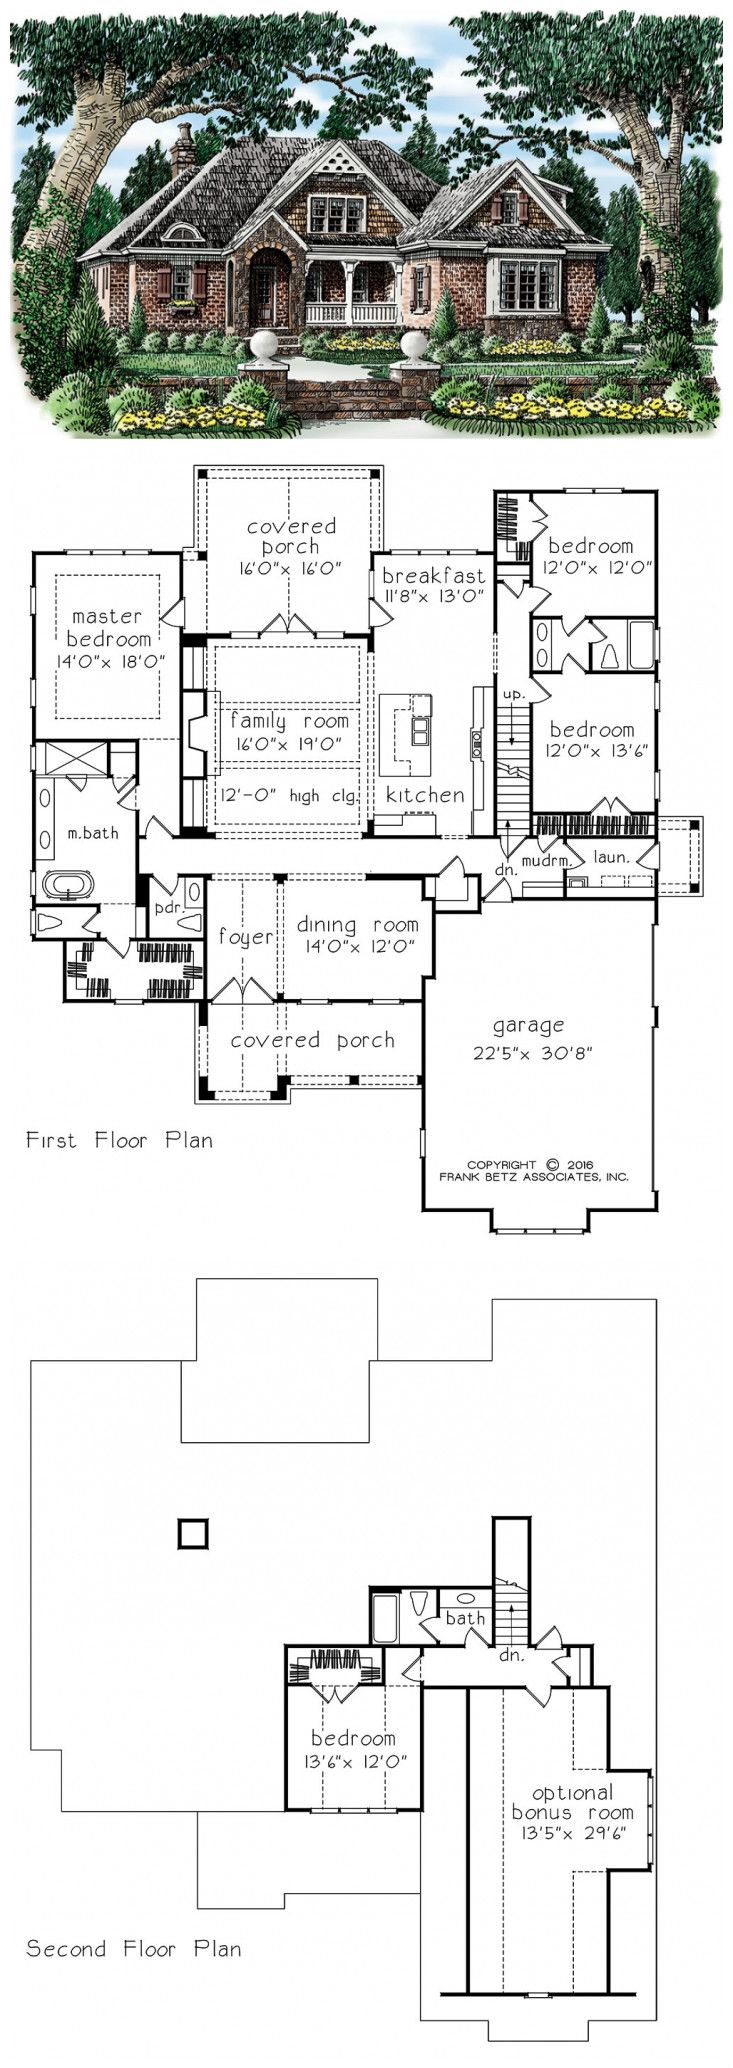 Betz house plans with large kitchen frank house plans designs ideas -  Frank Betz House Plan Glenella Springs By Frank Betz Associates Inc